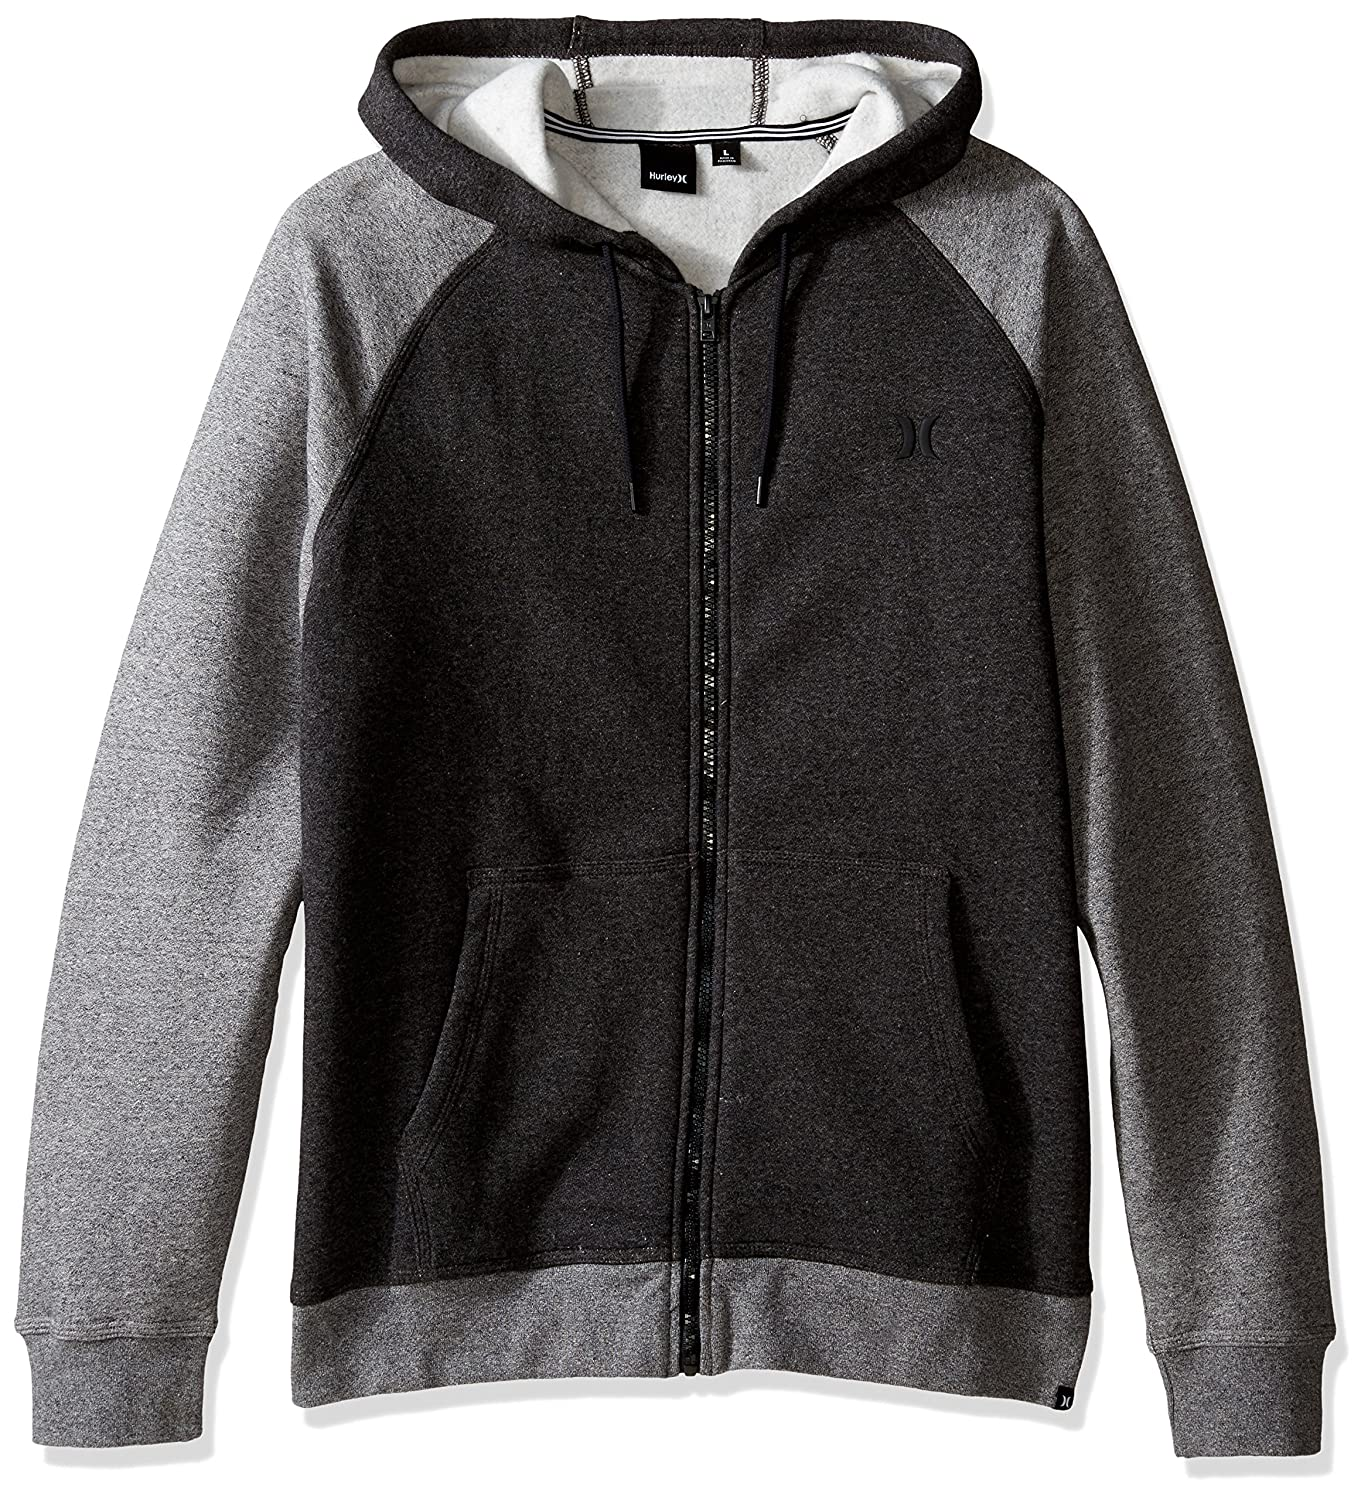 Hurley Getaway 2.0 Fleece Men's Full-Zip Hoodies Black